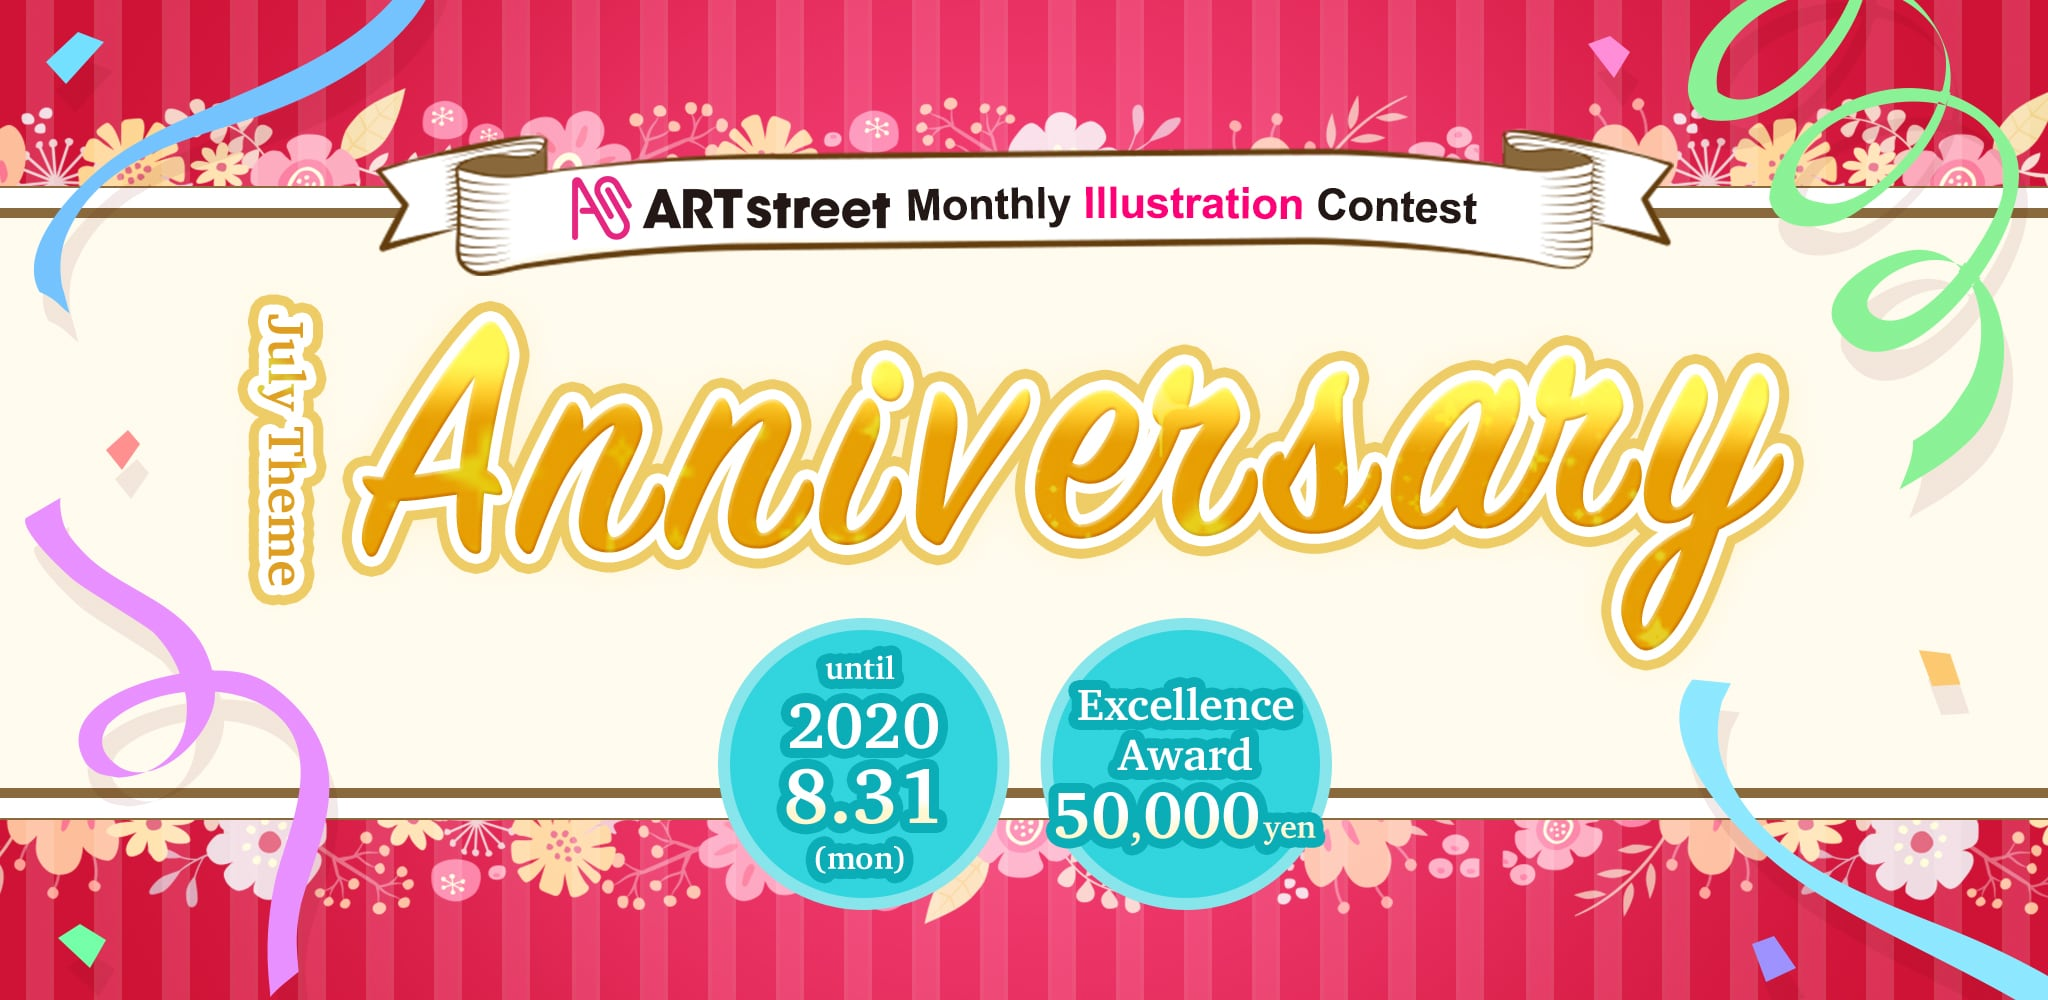 ART street Monthly Illustration Contest July Theme: Anniversary| Contest - ART street by MediBang